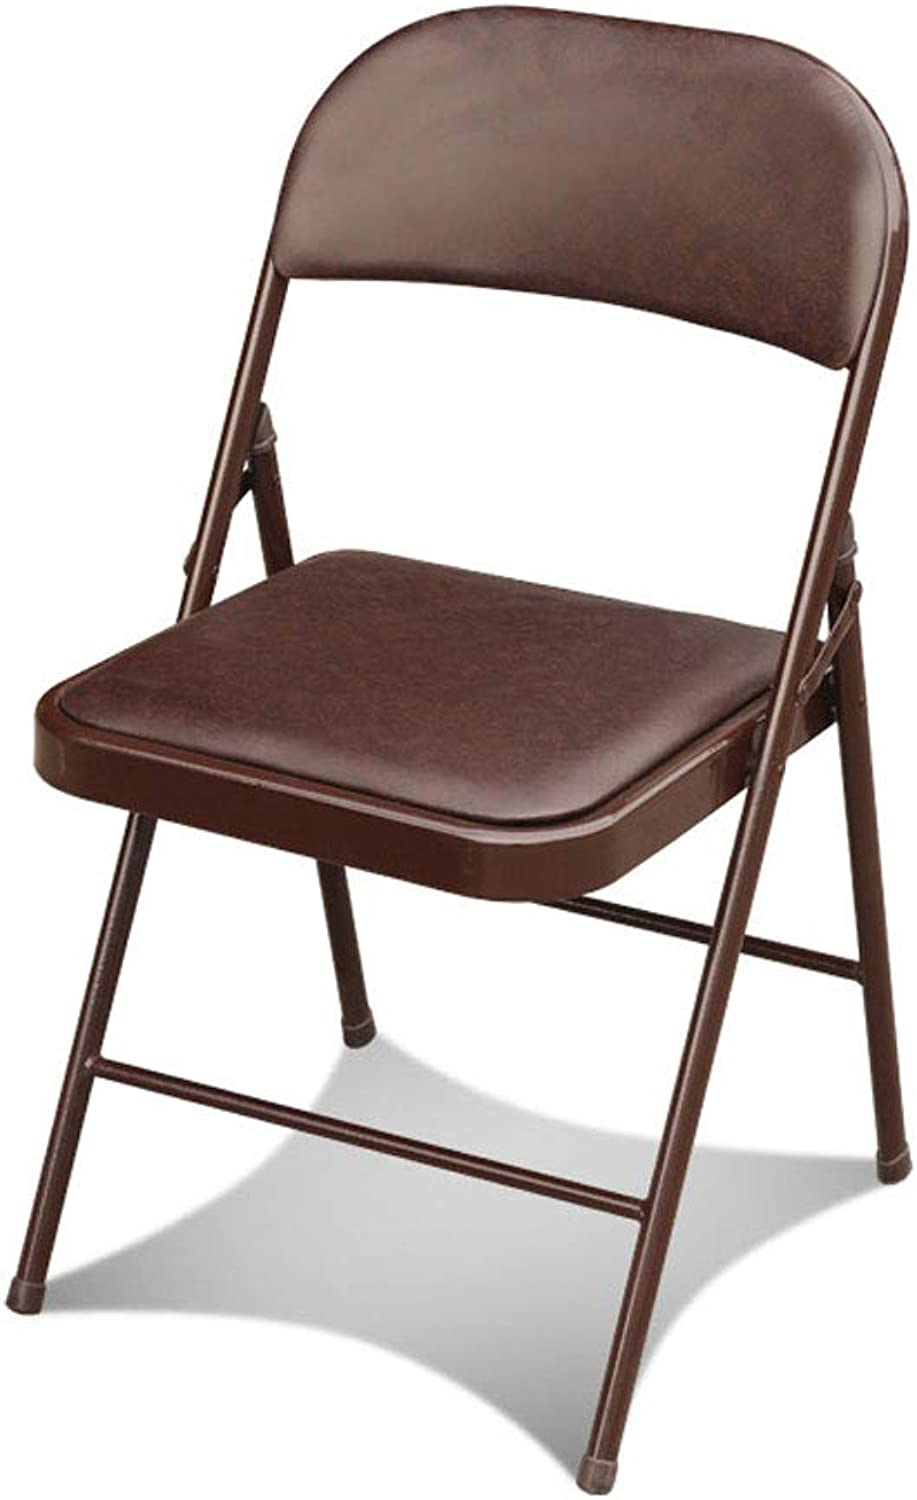 CHX Folding Back Home Dining Chair Sleek Minimalist Stool Office Meeting Chair C (color   Brown)